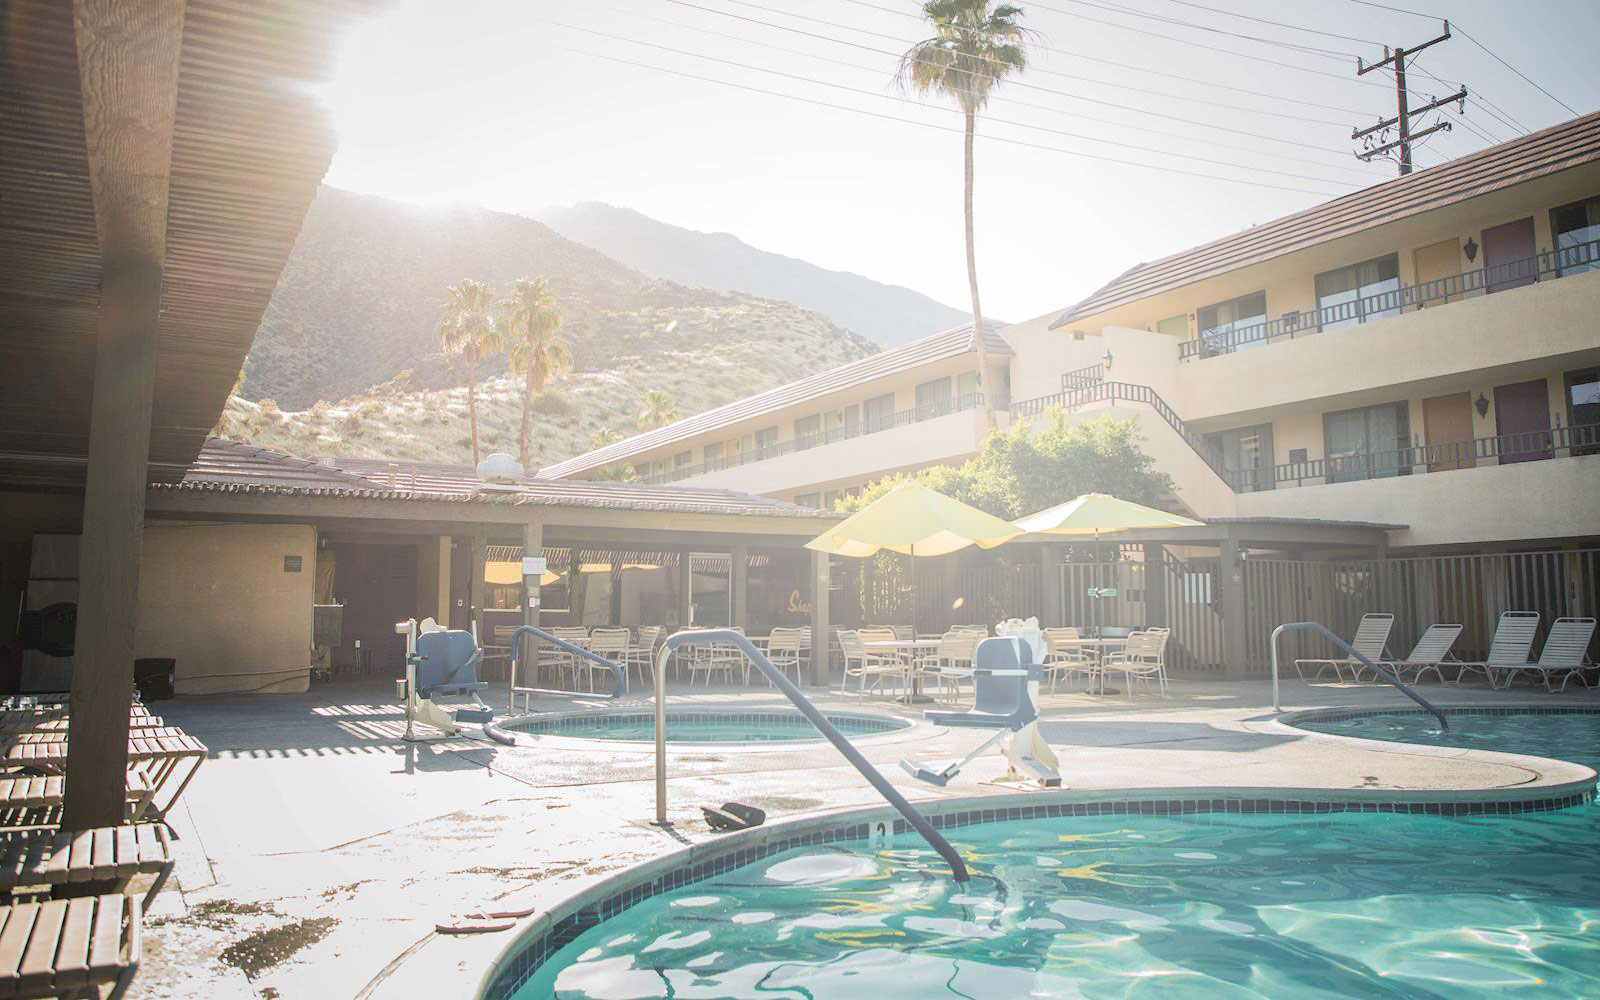 Palm Springs Hotel - Vagabond Inn Palm Springs on map of palm springs ca area, map of the palm springs area, sparrows hotel palm springs, map of palm springs and surrounding cities, highway map of palm springs, comfort inn palm springs, luxury hotels in palm springs, map of things to do in california, boutique hotels in palm springs, ingleside inn palm springs, map of hotels in laguna beach, map of palm springs casinos, map of california beaches, best restaurants in palm springs, map of southern california palm springs, things to do in palm springs, indian casinos in palm springs, melvyn's palm springs, map of greater palm springs,